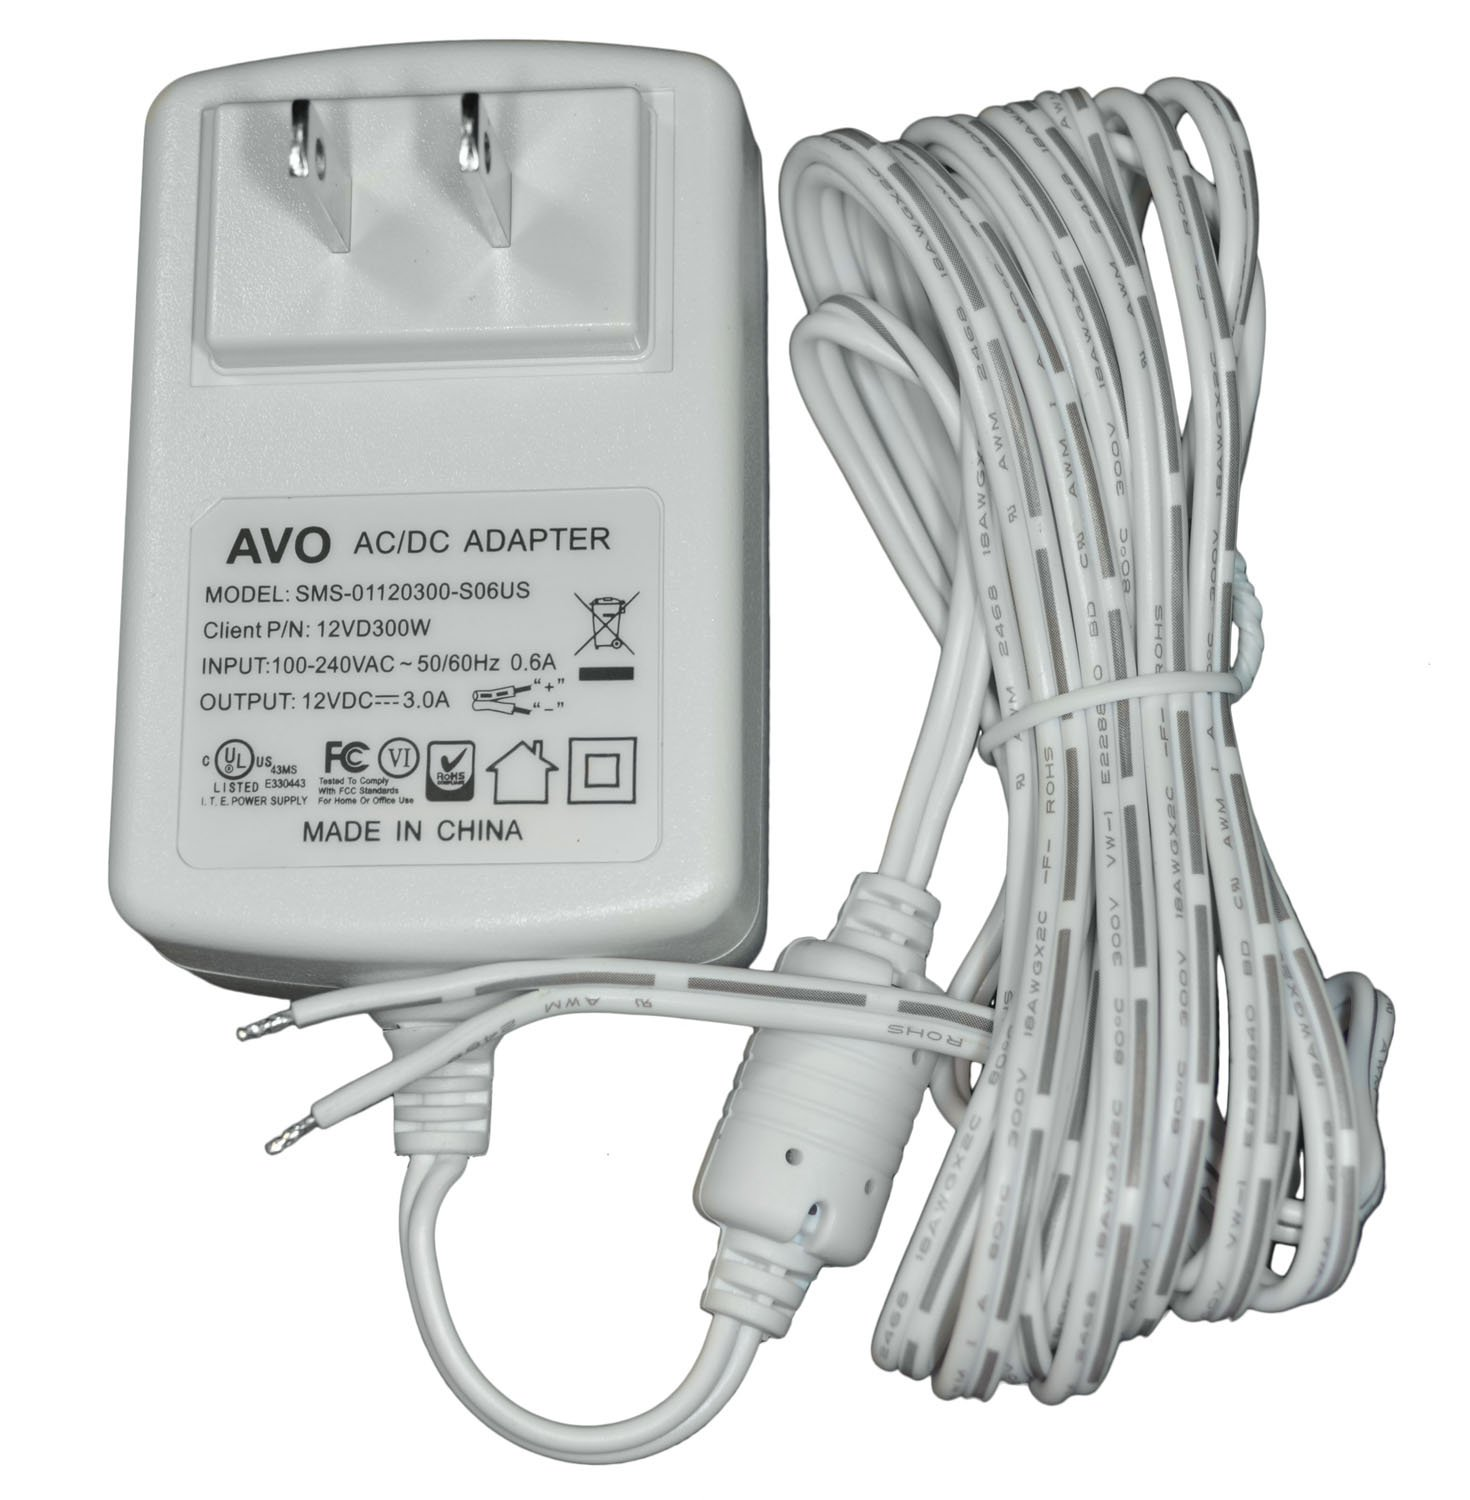 12V DC 3A White Wall Plug DC Adapter//Power Supply Non-Terminated 10 Foot Parallel Zip Cord Lead Wire Input: 100-240VAC 50//60Hz AVO 12VD300W